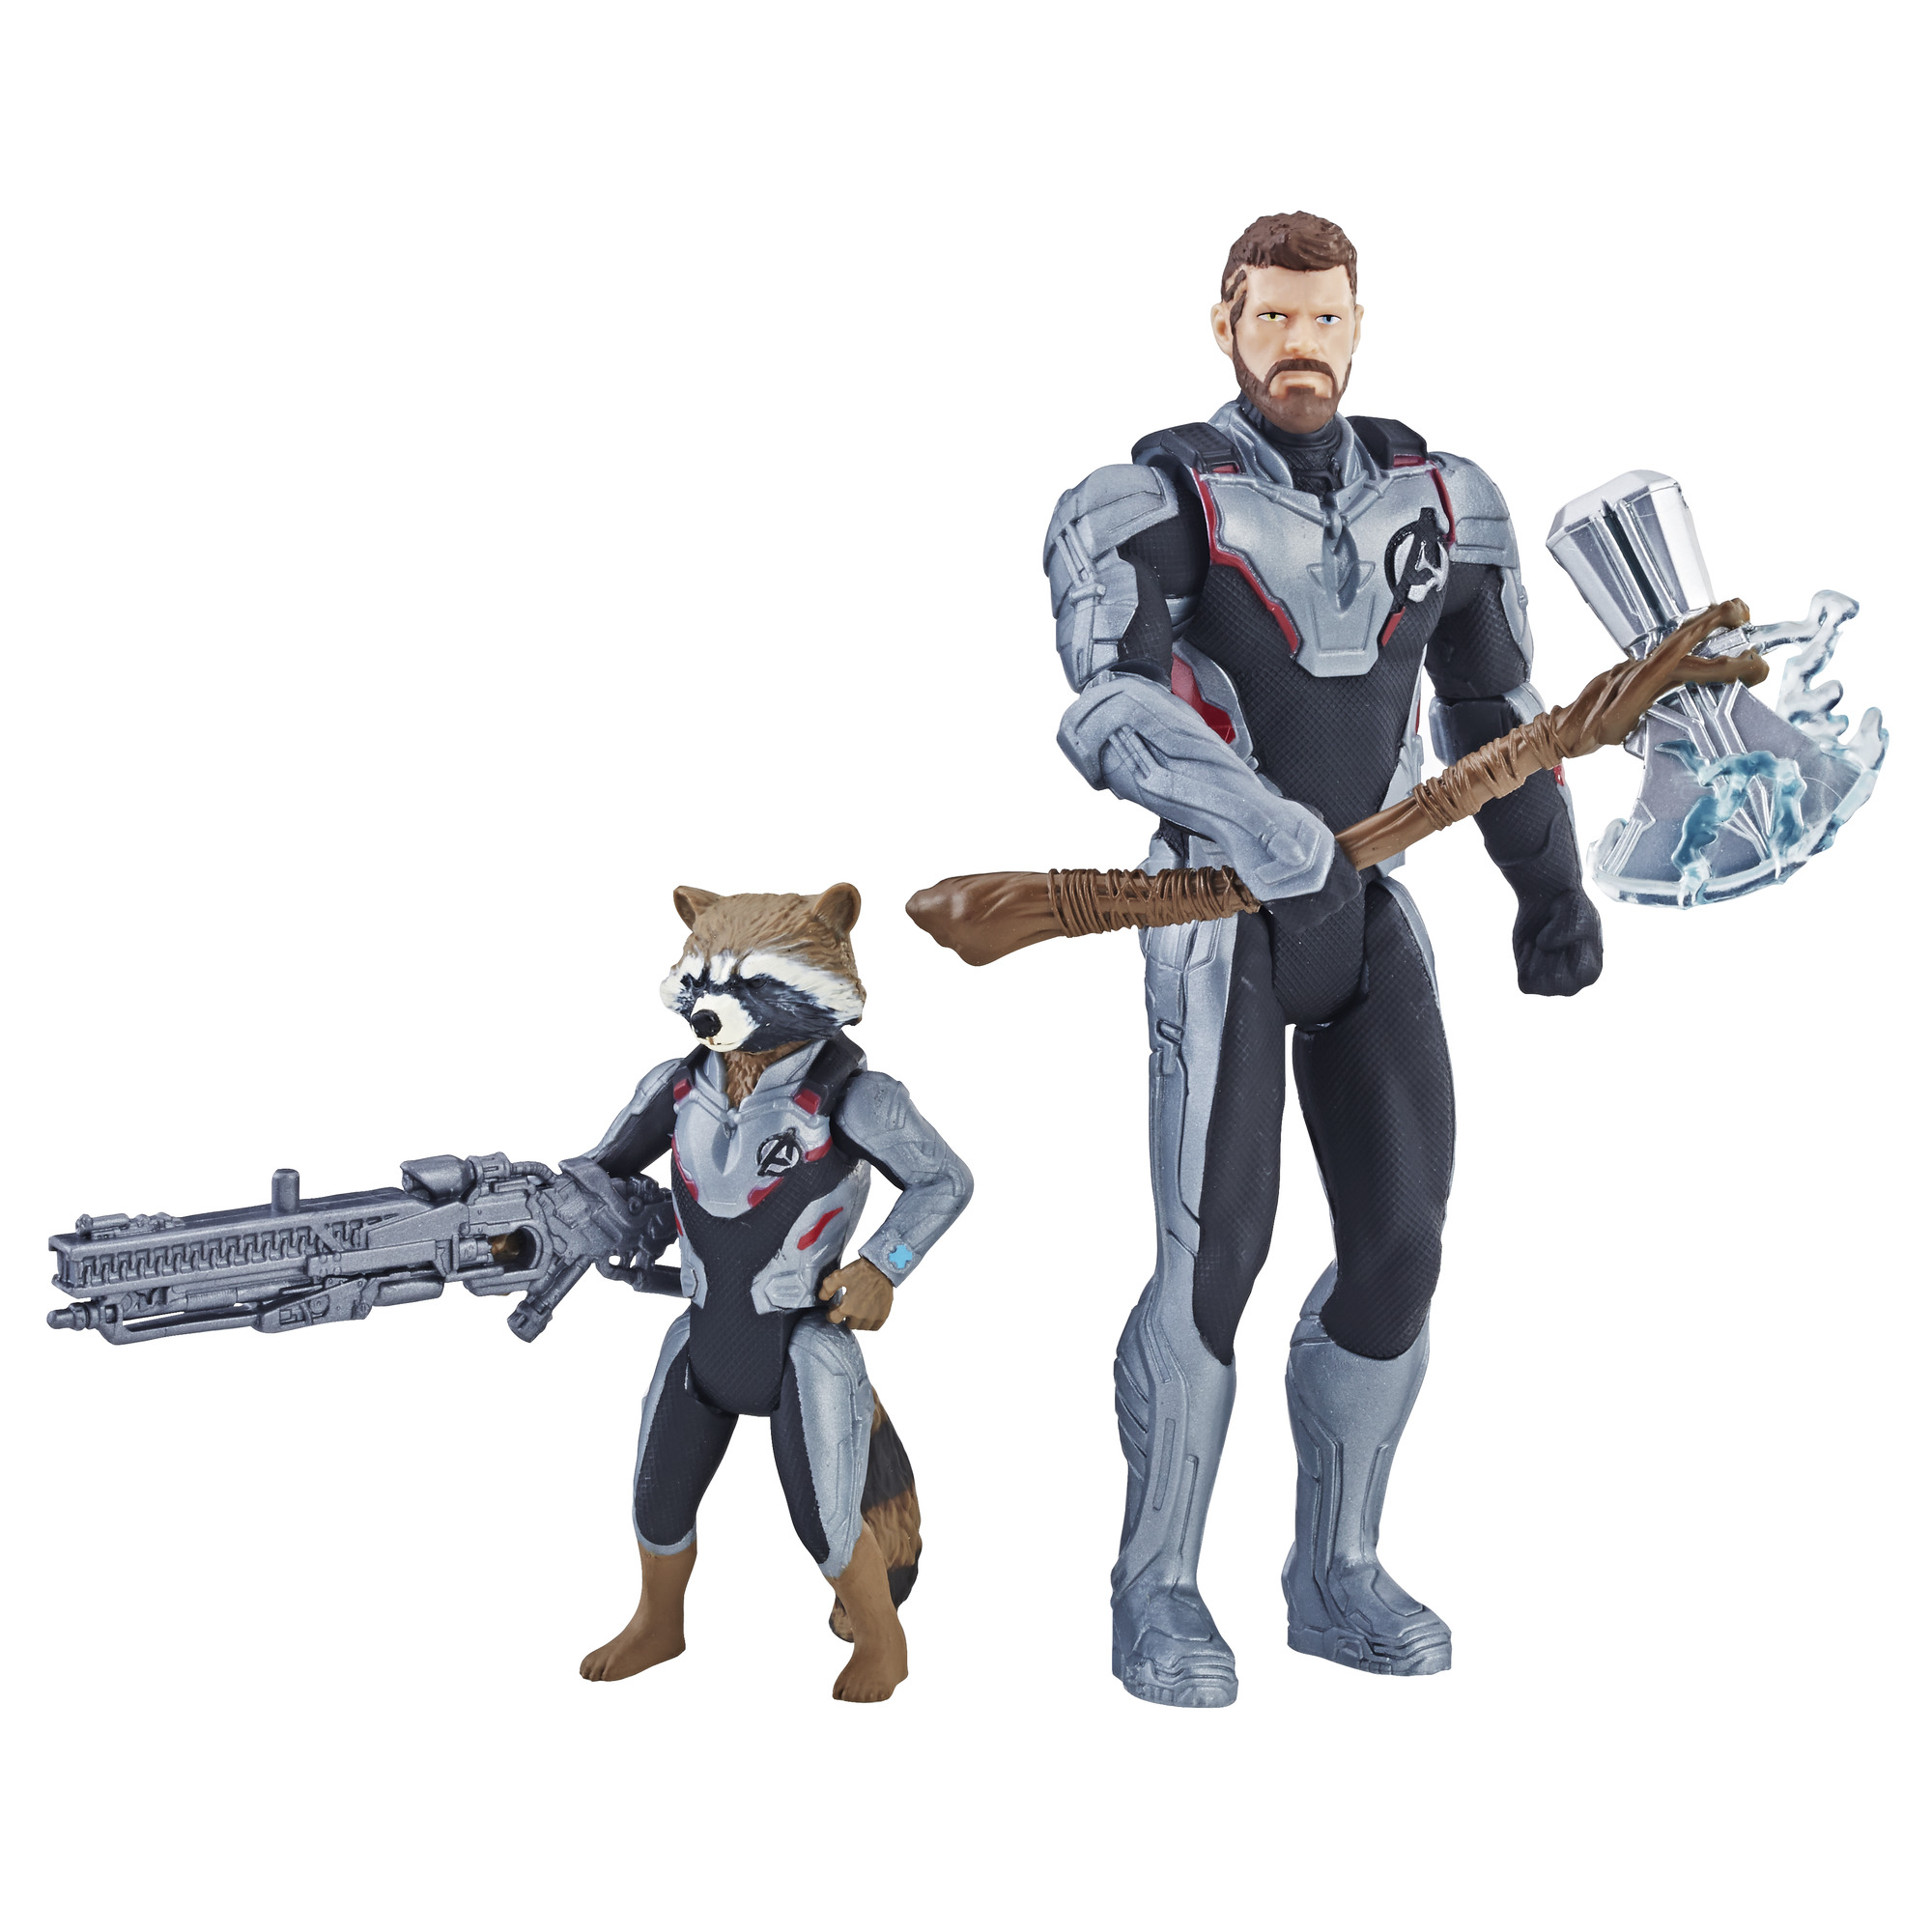 Marvel Avengers: Endgame Thor and Rocket Raccoon 2-pack Characters